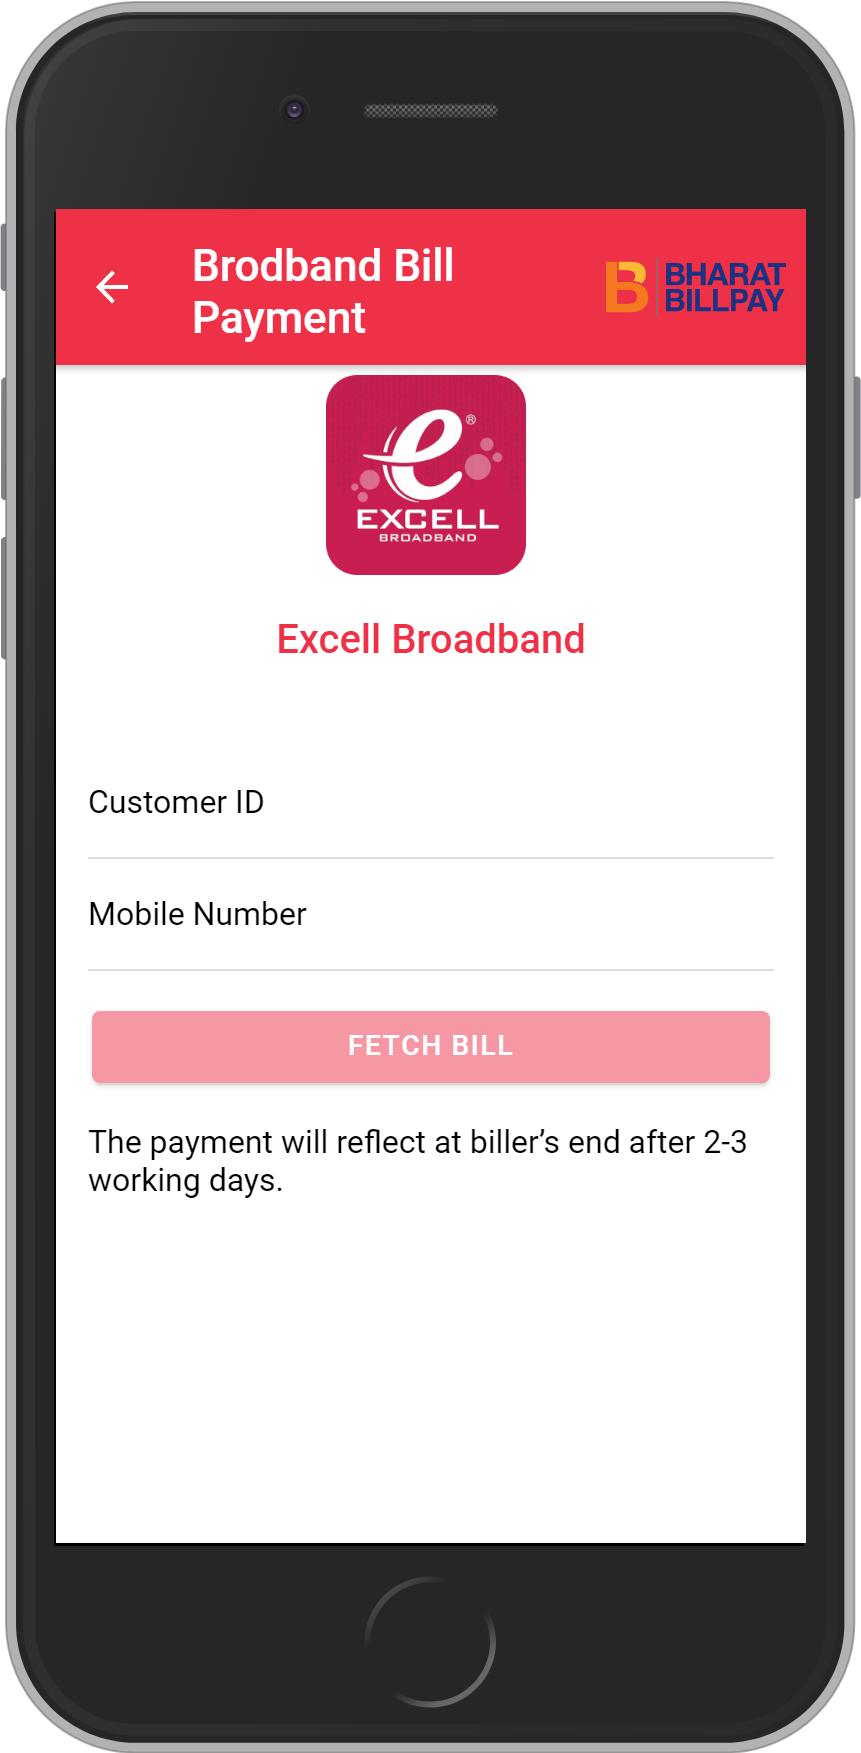 Get UNLIMITED <b>0.1%</b> CASHBACK on Excell Broadband Bill Payment.